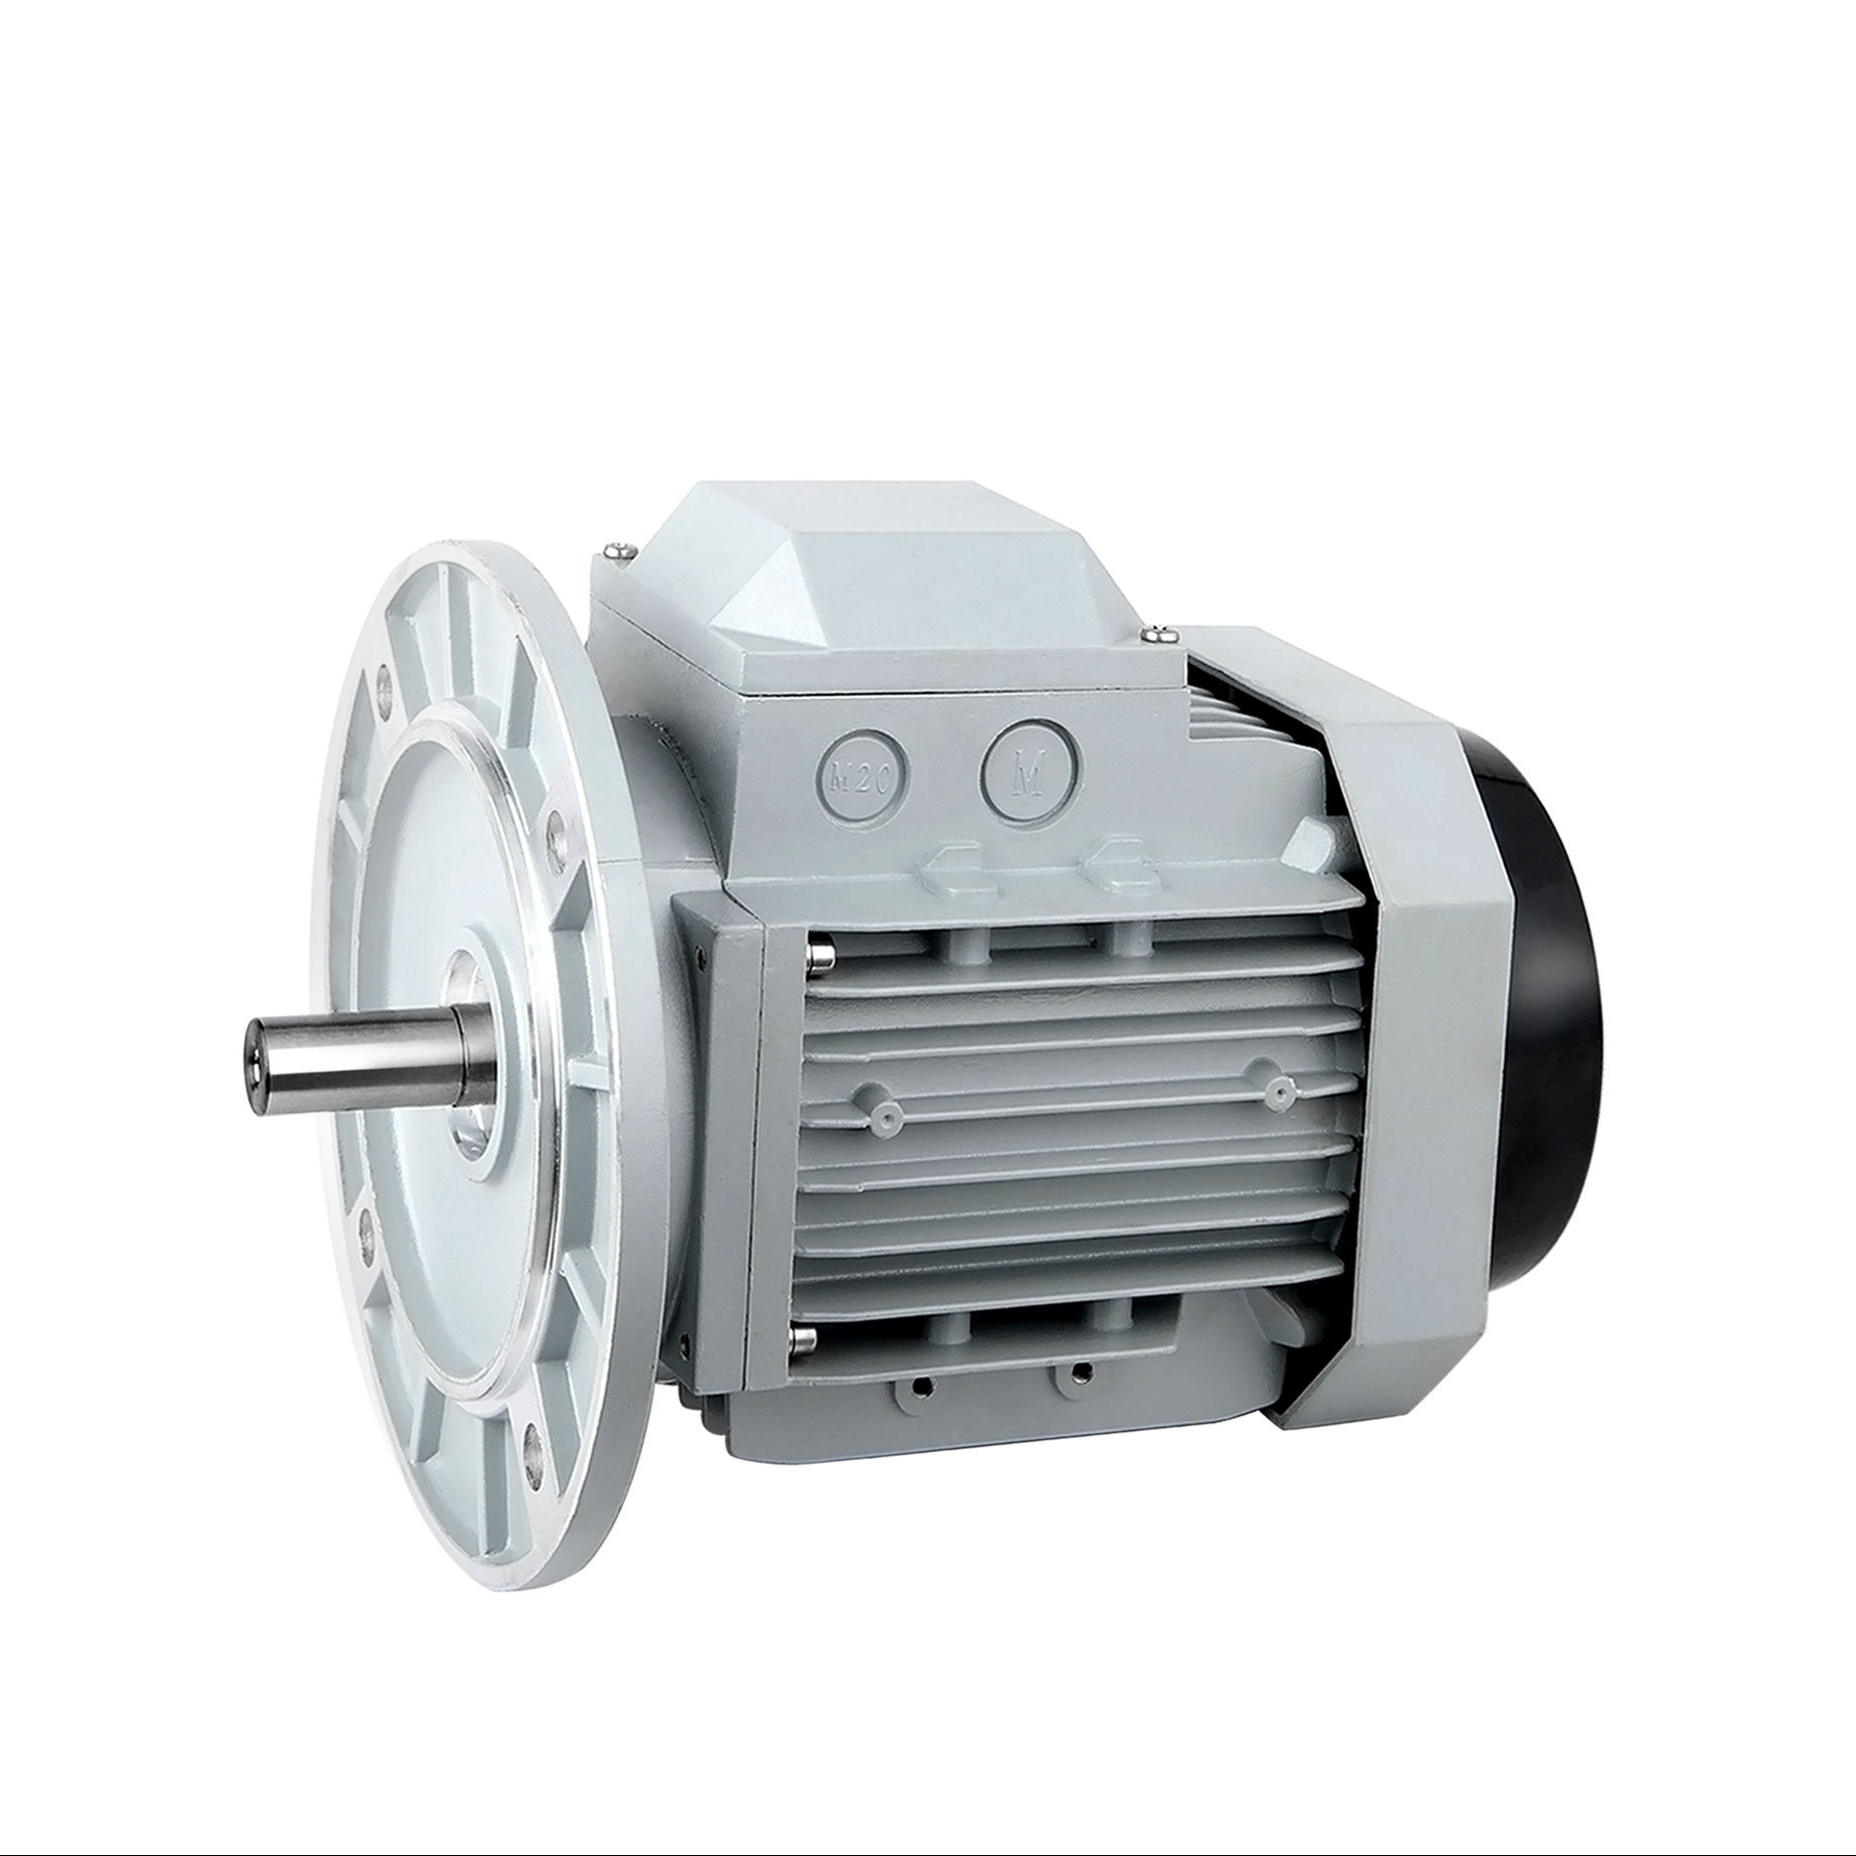 AC three phase asynchronous <strong>motor</strong> 1500r/min4P 380V 50 Hz <strong>Y2</strong>-63M1-4 0.12kw <strong>motor</strong> gearbox <strong>motor</strong>